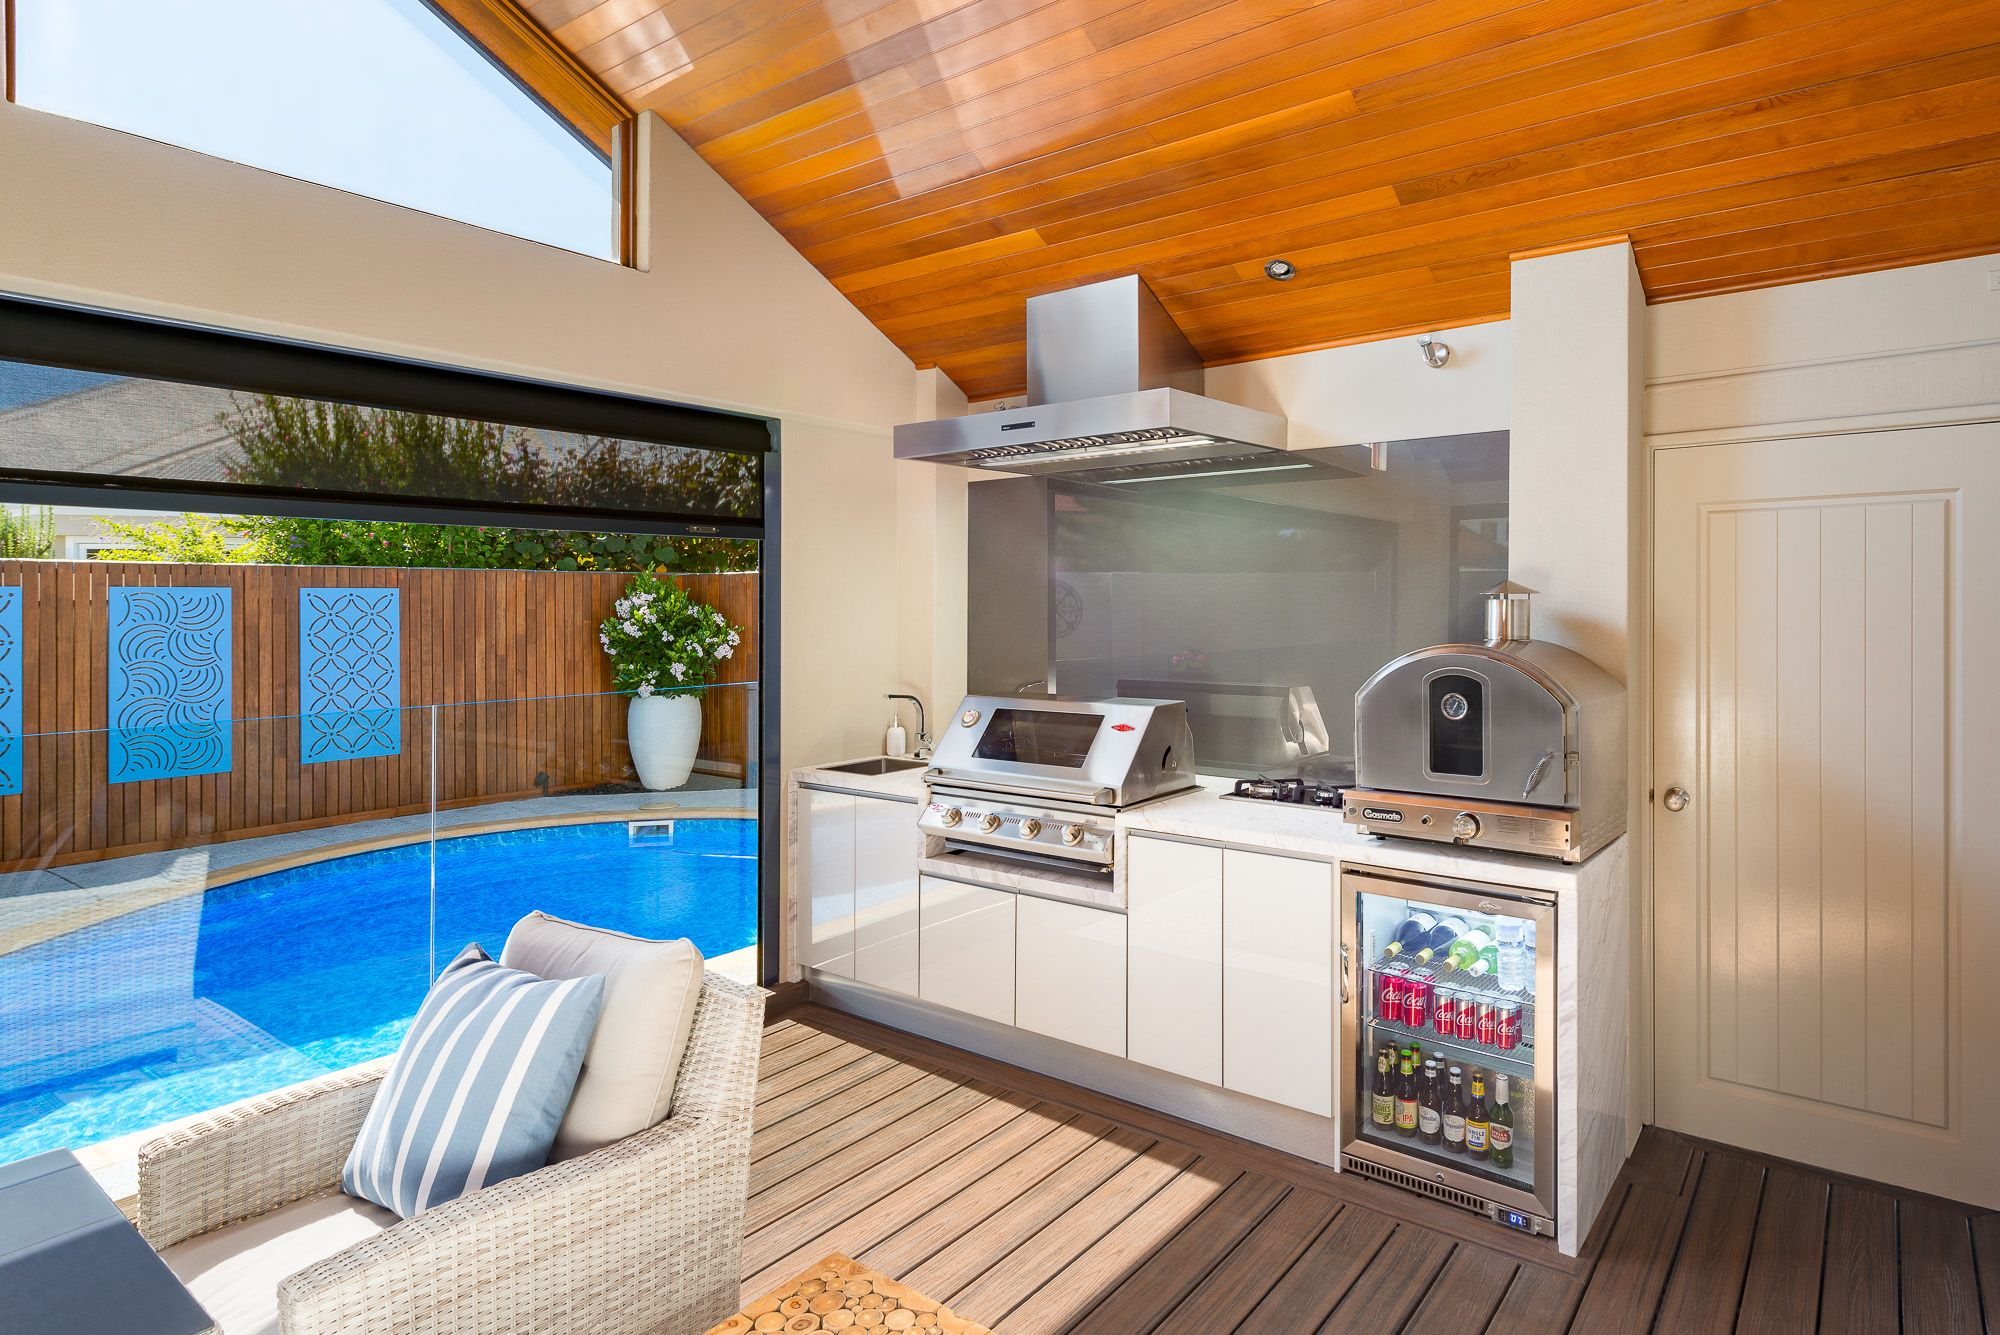 Perth S Leading Outdoor Kitchen Installers With Showrooms In Osborne Park And Joondalup Bbq Store Kitchen Home Decor